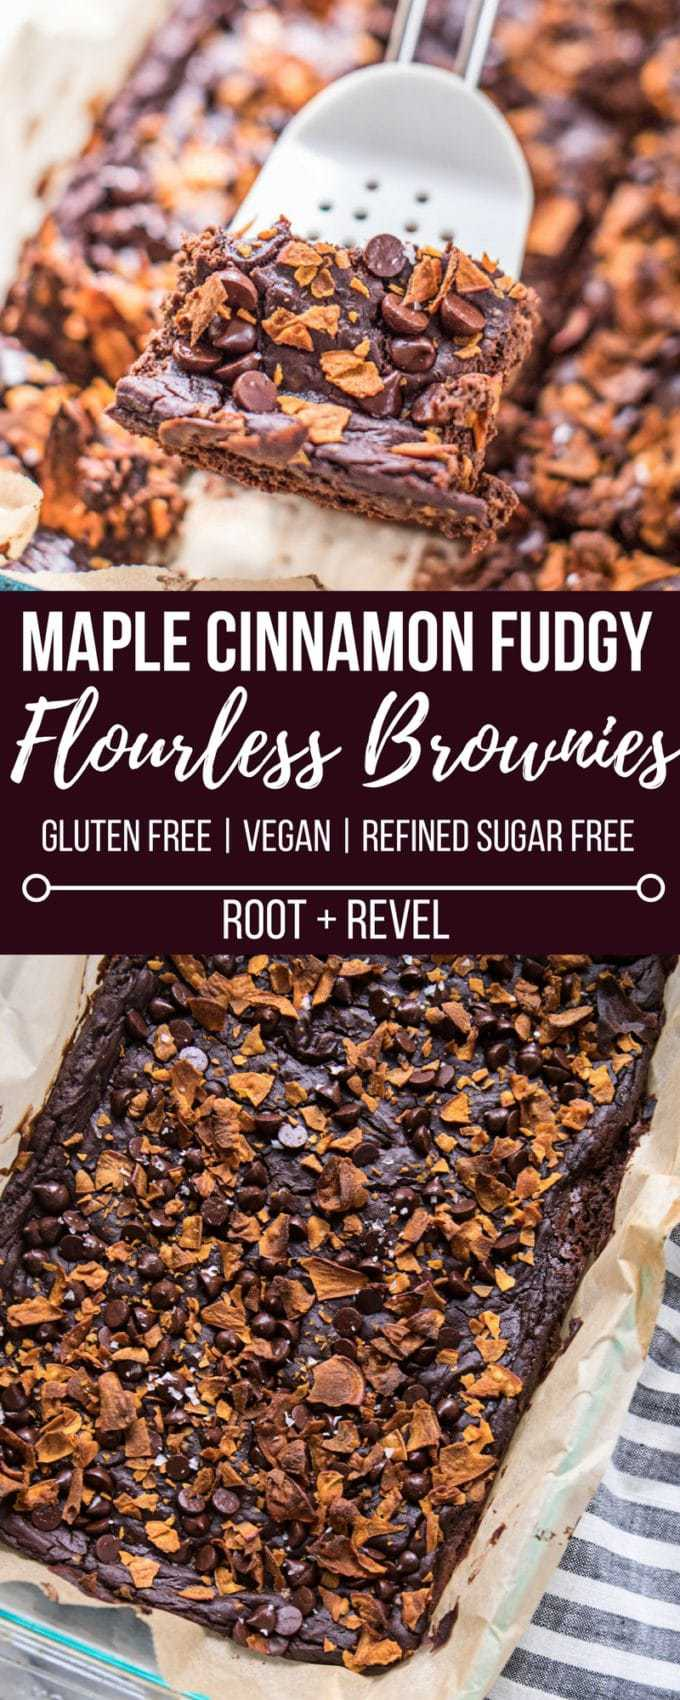 Looking for a healthy dessert recipe? Then you'll love these Maple Cinnamon Fudgy Flourless Brownies! Made with black beans, sweet potato, almond butter, cacao powder and baking soda, these gluten-free brownies are easy to make (one bowl!), refined sugar-free, vegan, nutrient-dense AND yet they're rich, decadent and super moist, gooey and fudgy! The perfect way to sneak more veggies and plant-based protein into your diet--no one will ever guess these flourless brownies are actually good for you!